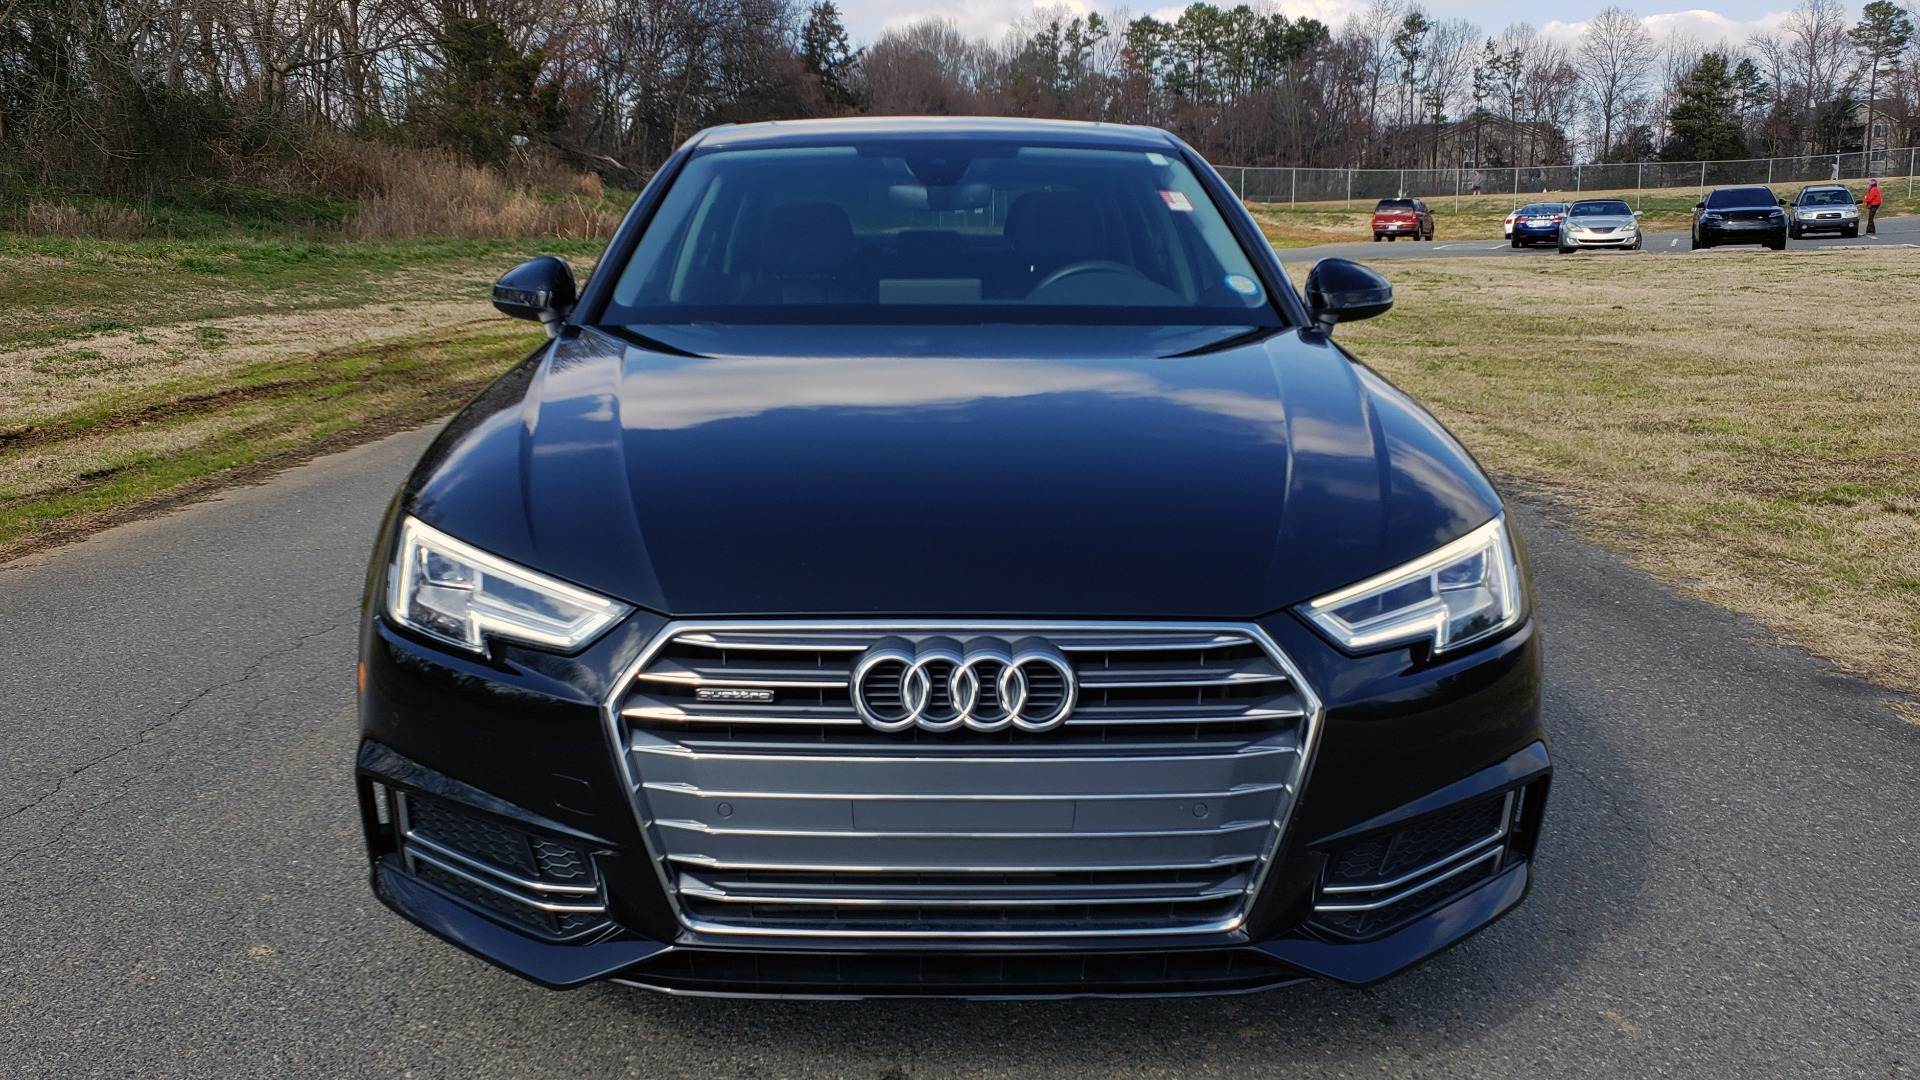 Used 2017 Audi A4 PREMIUM PLUS 2.0T / TECH / NAV / CLD WTHR / SUNROOF / REARVIEW for sale Sold at Formula Imports in Charlotte NC 28227 17